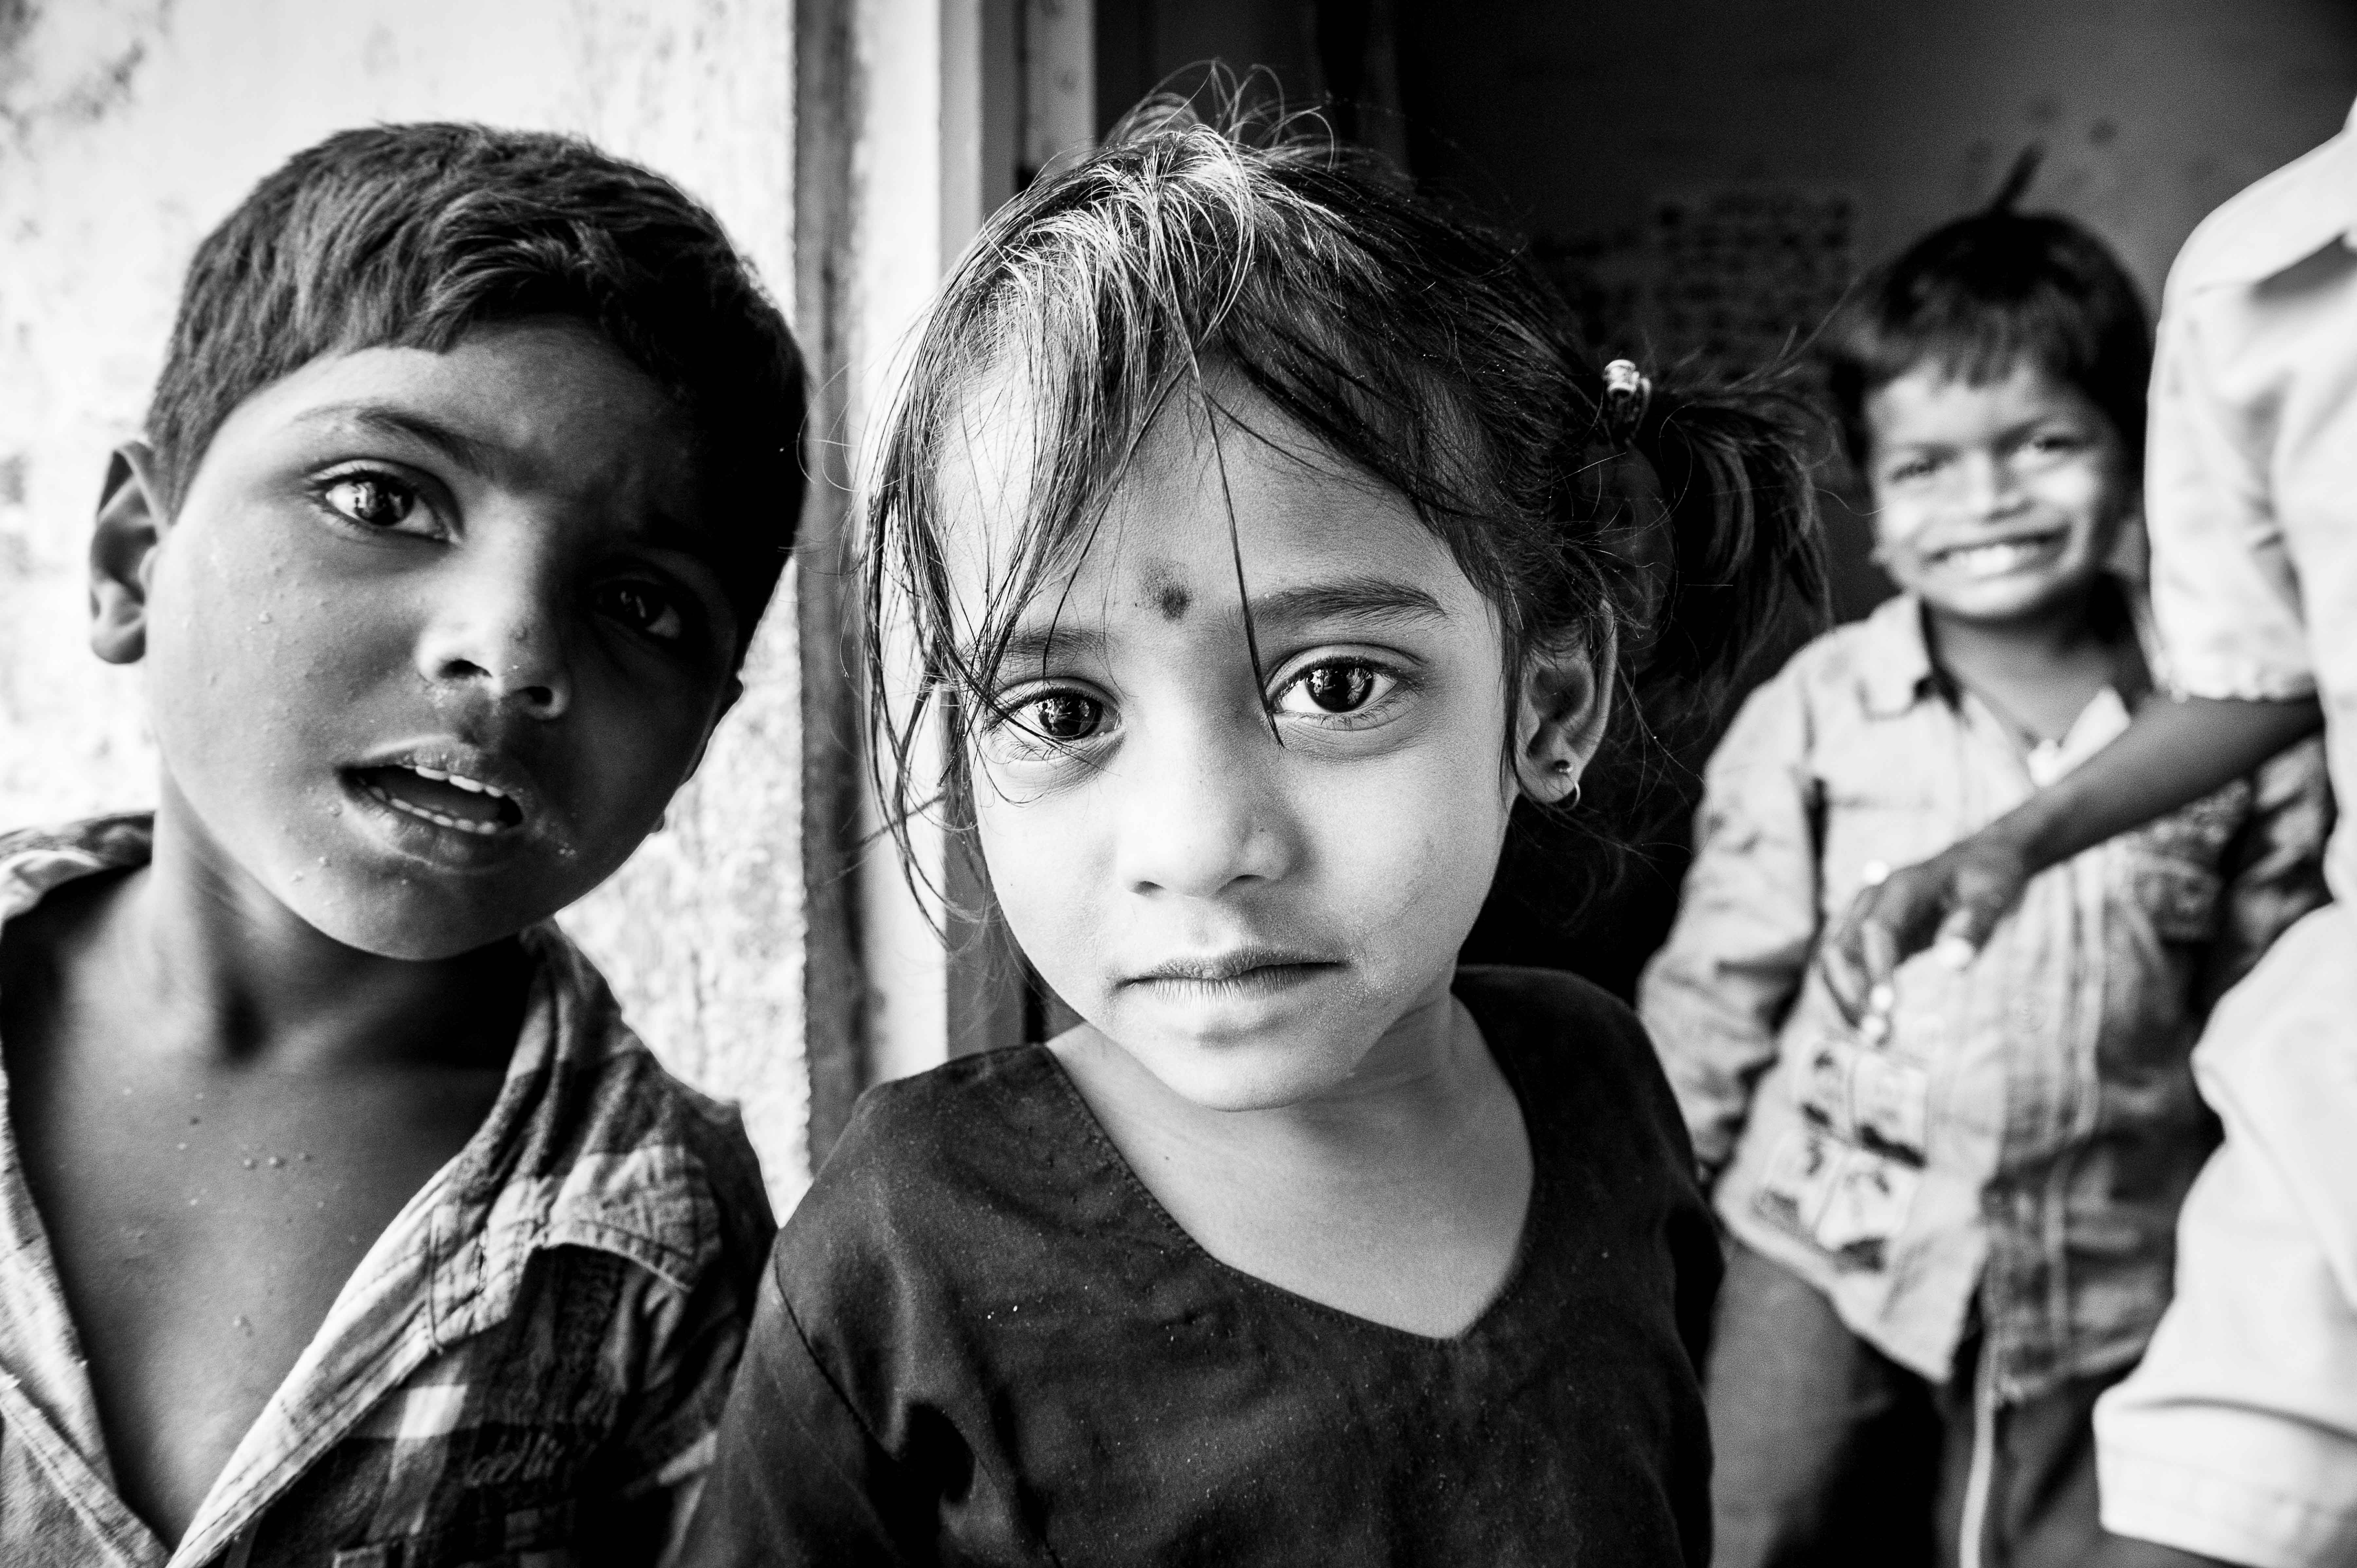 New to school after an early retirement from childhood labour children of hyderabad india